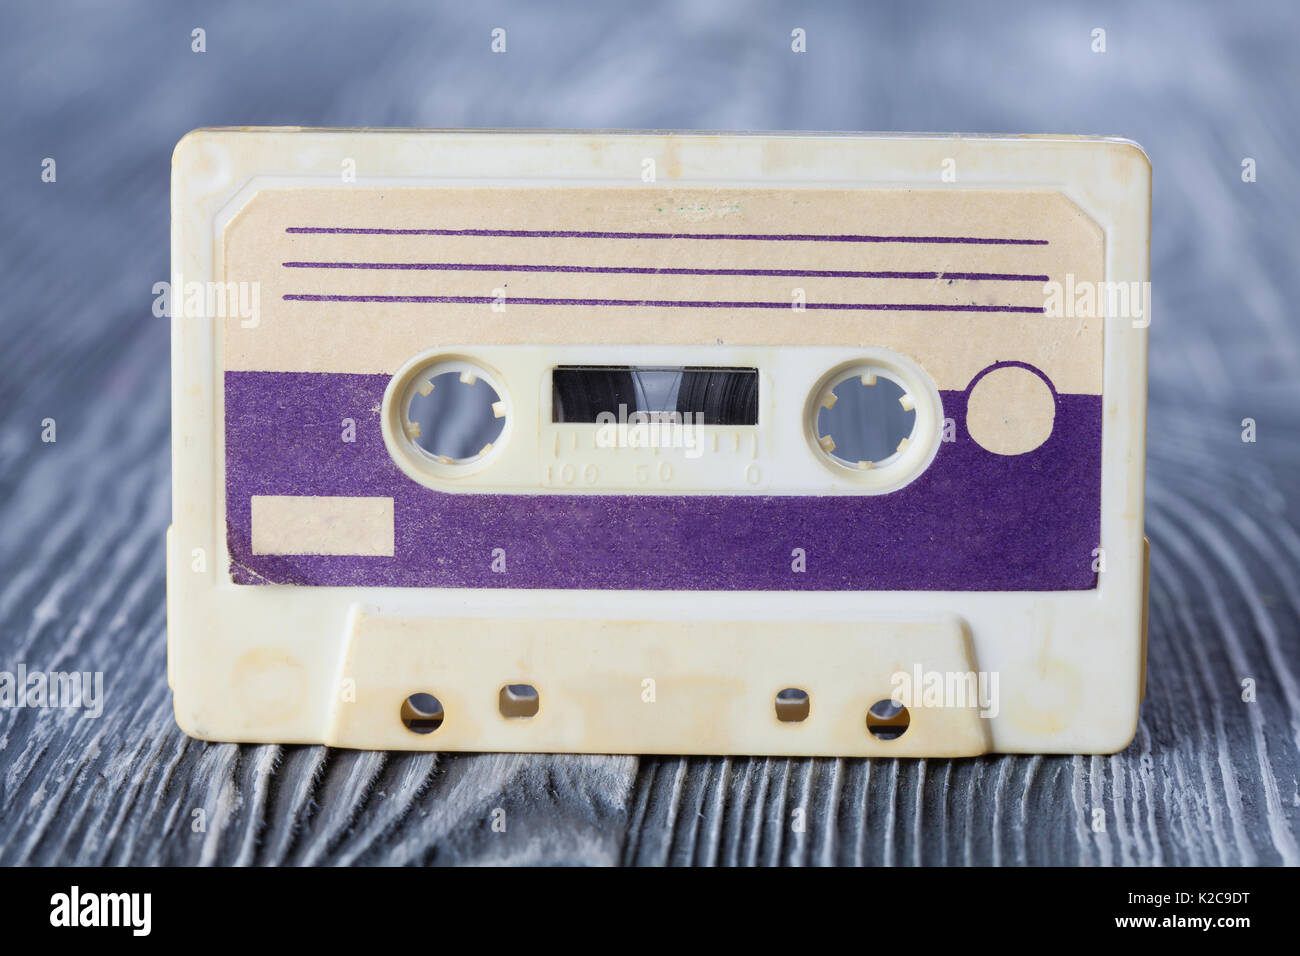 Violet compact cassette with magnetic tape format for audio recording and playback. MC on gray wooden background. Soft focus. - Stock Image